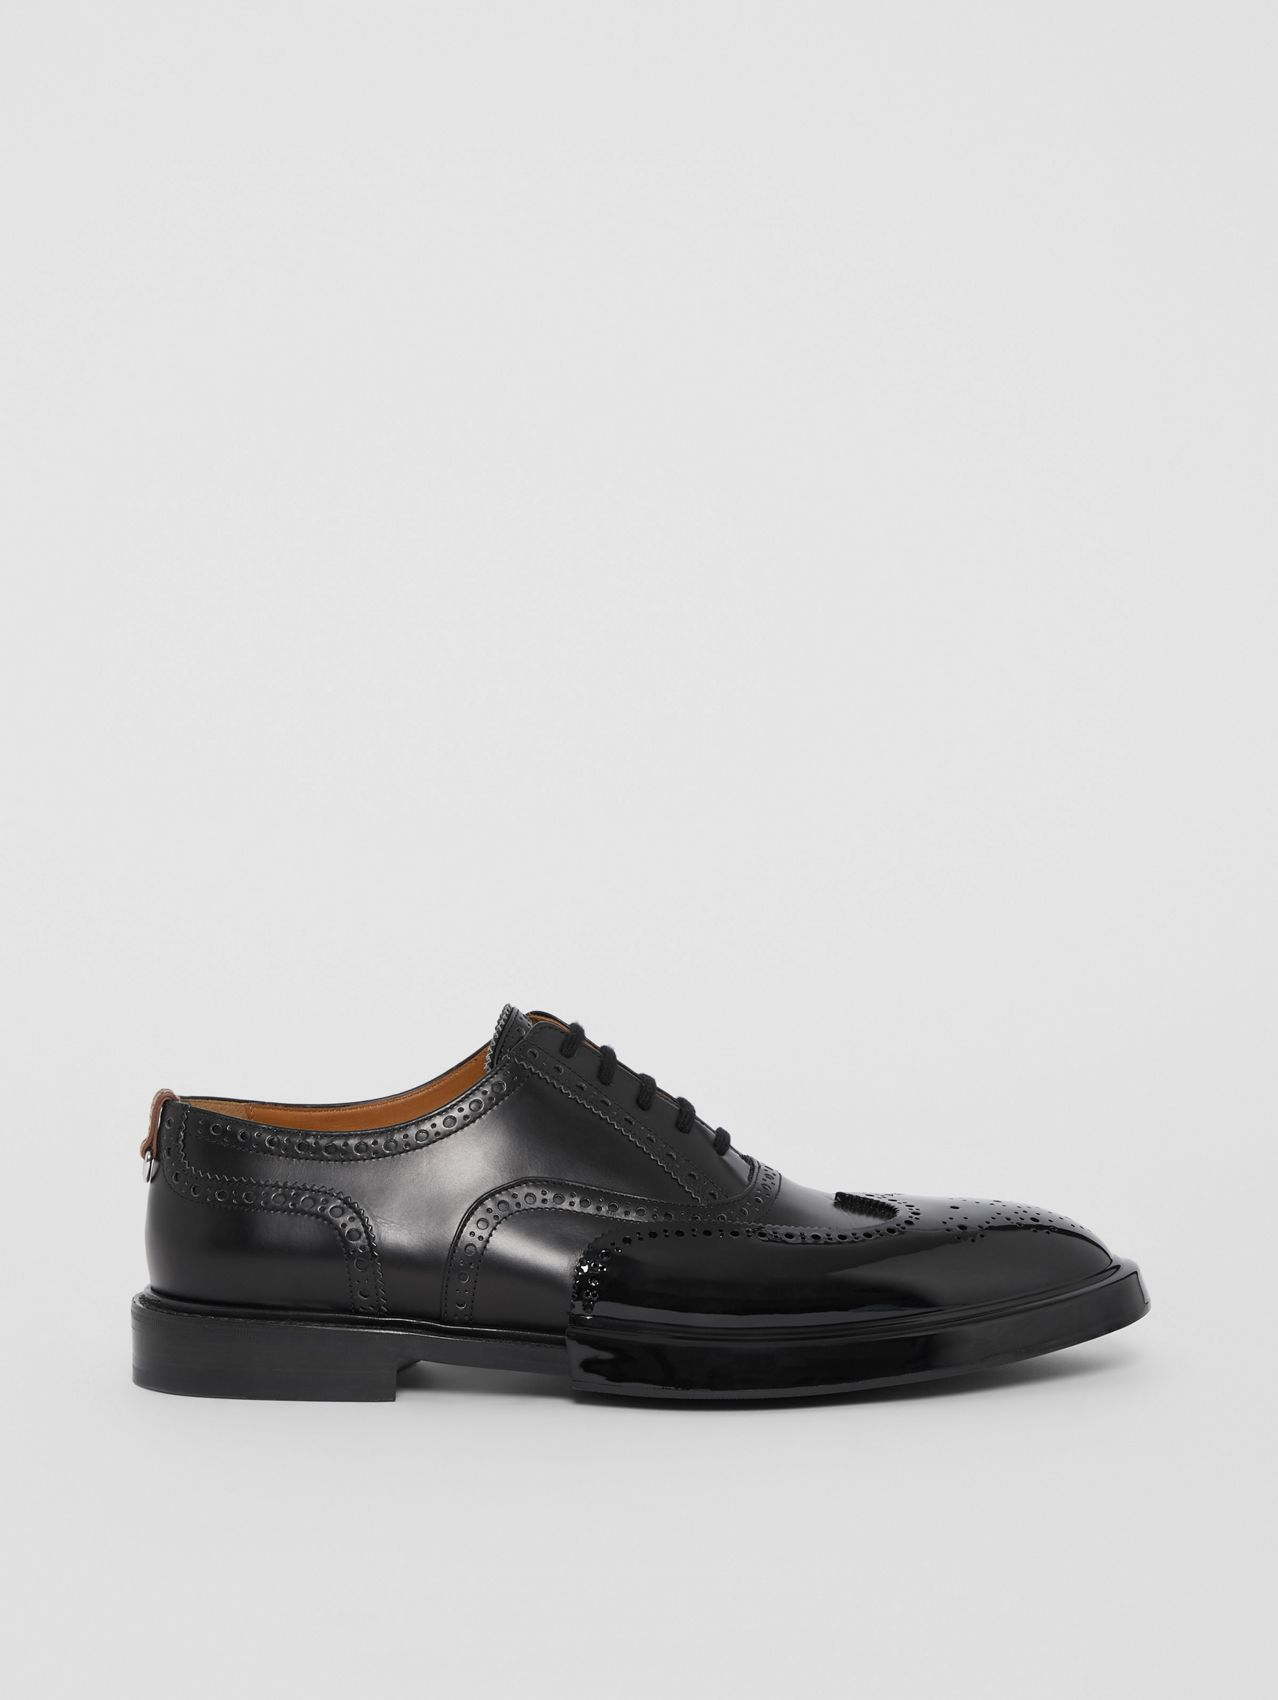 Brogue Oxford in pelle con rinforzo in punta (Nero)